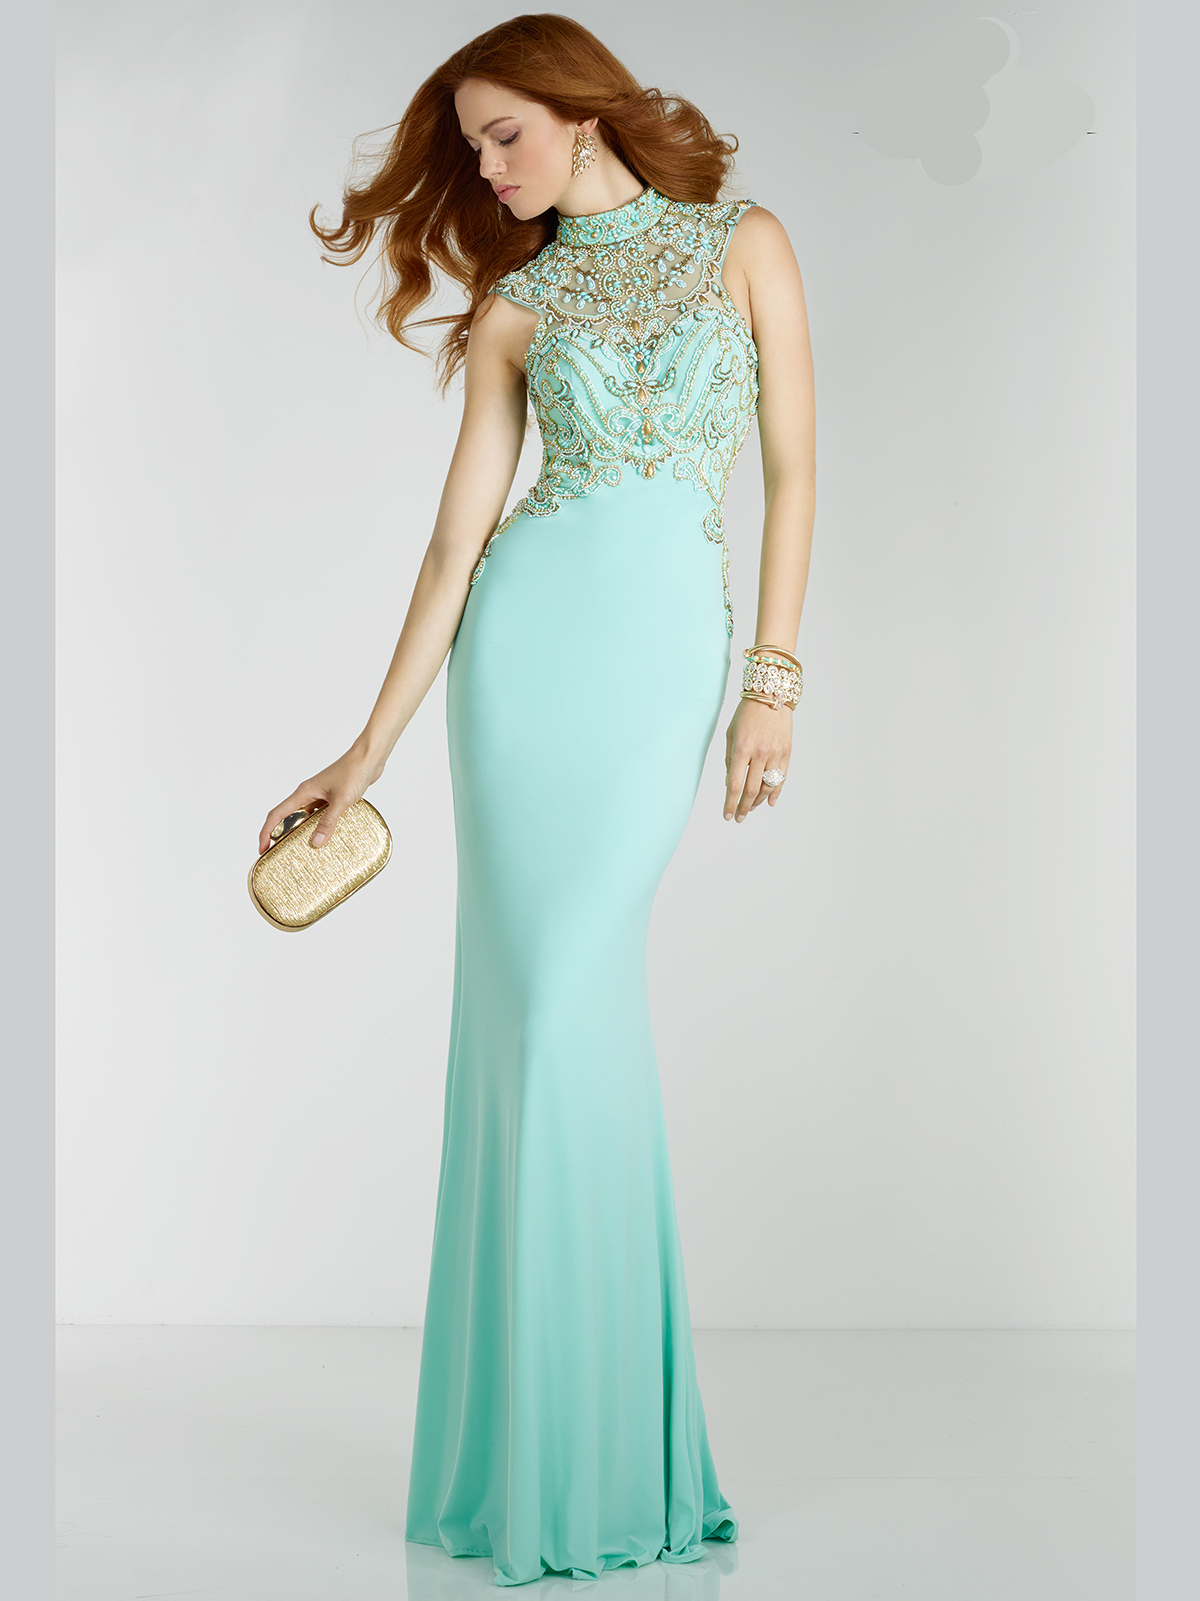 Green High Neck Prom Dresses – fashion dresses